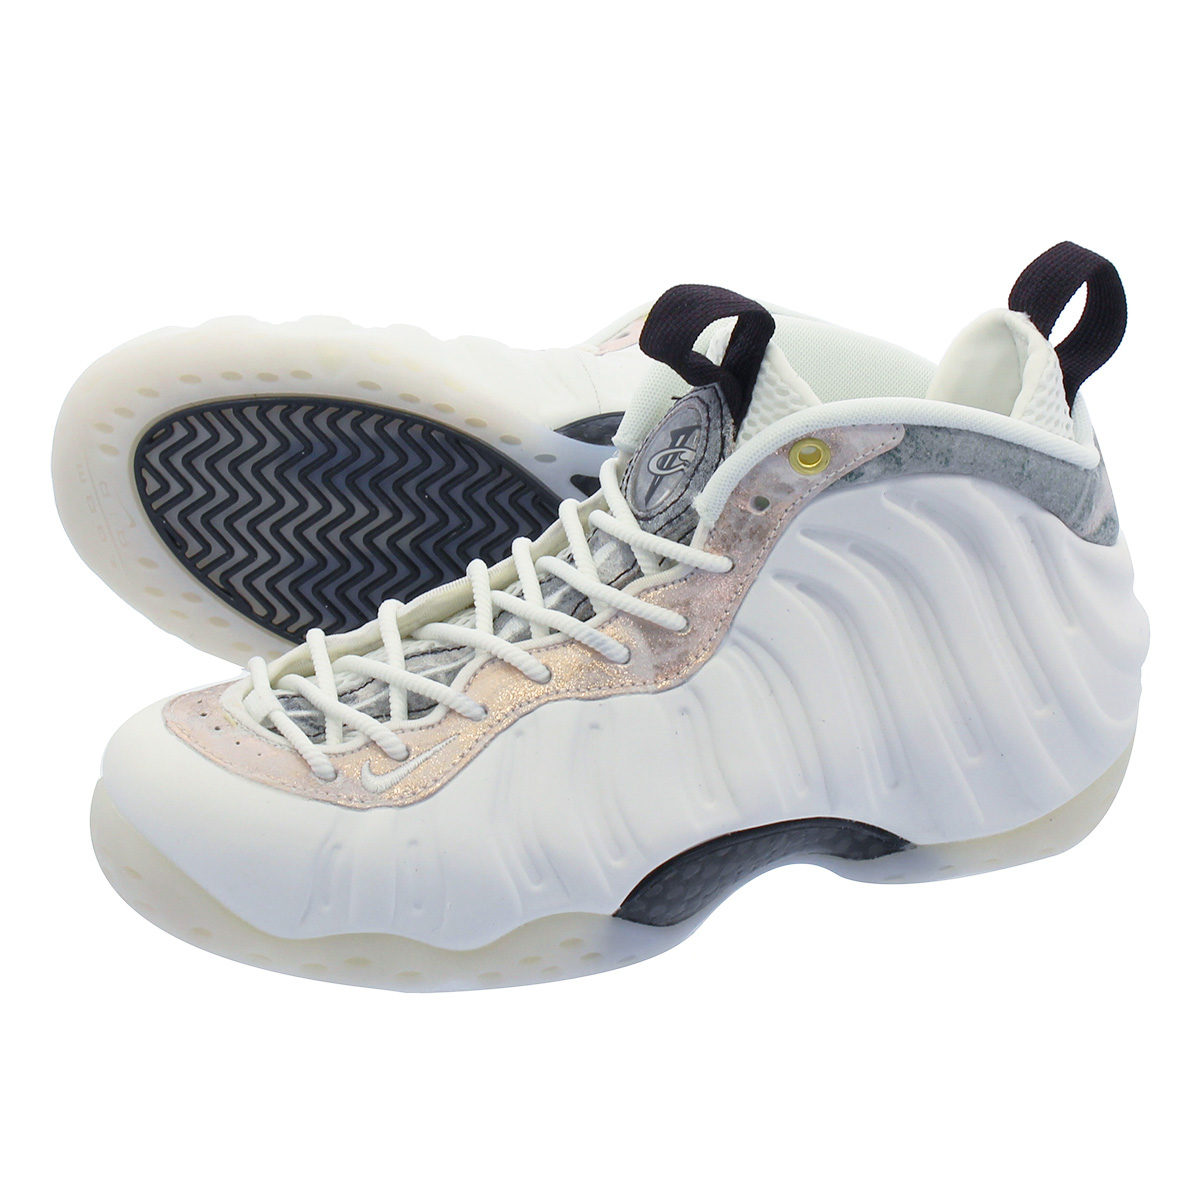 NIKE WMNS AIR FOAMPOSITE ONE ナイキ ウィメンズ フォームポジット ワン WHITE/SUMMIT WHITE/OIL GREY aa3963-101